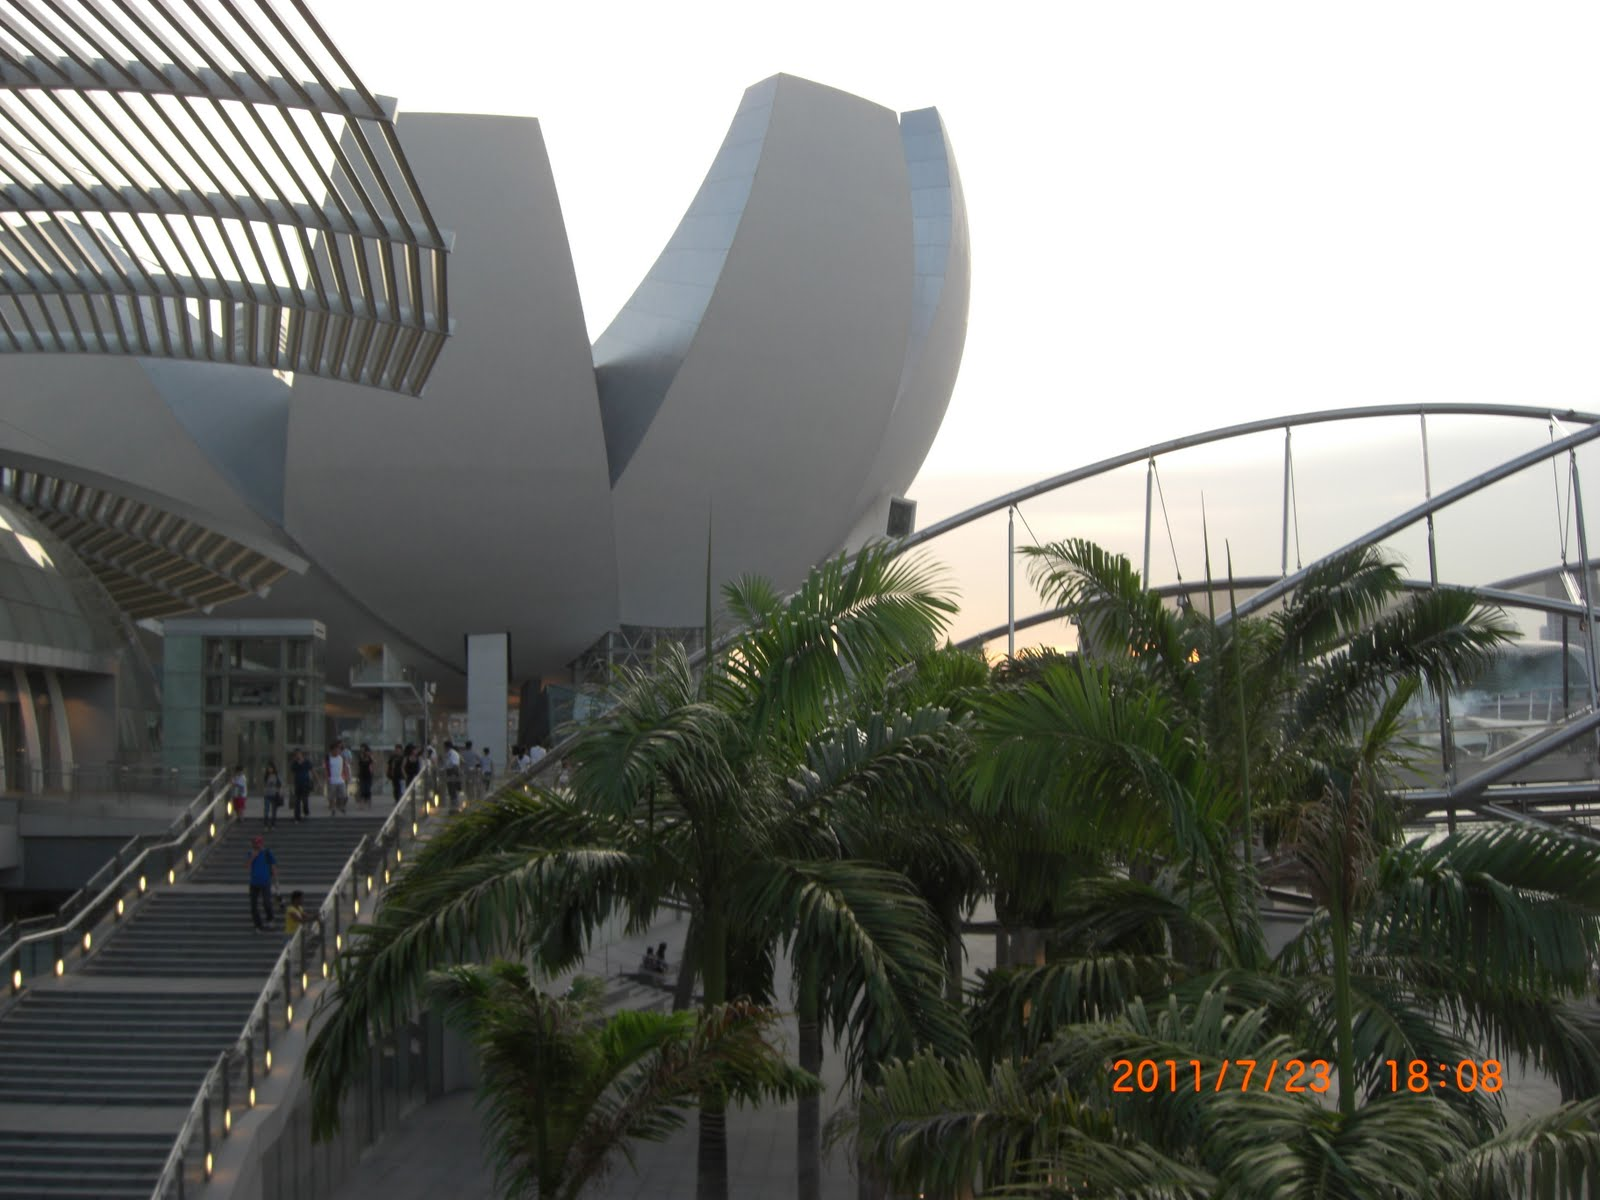 visitor in singapore art museum essay Singapore art museum: pay a visit - see 486 traveler reviews, 470 candid photos, and great deals for singapore, singapore, at tripadvisor.